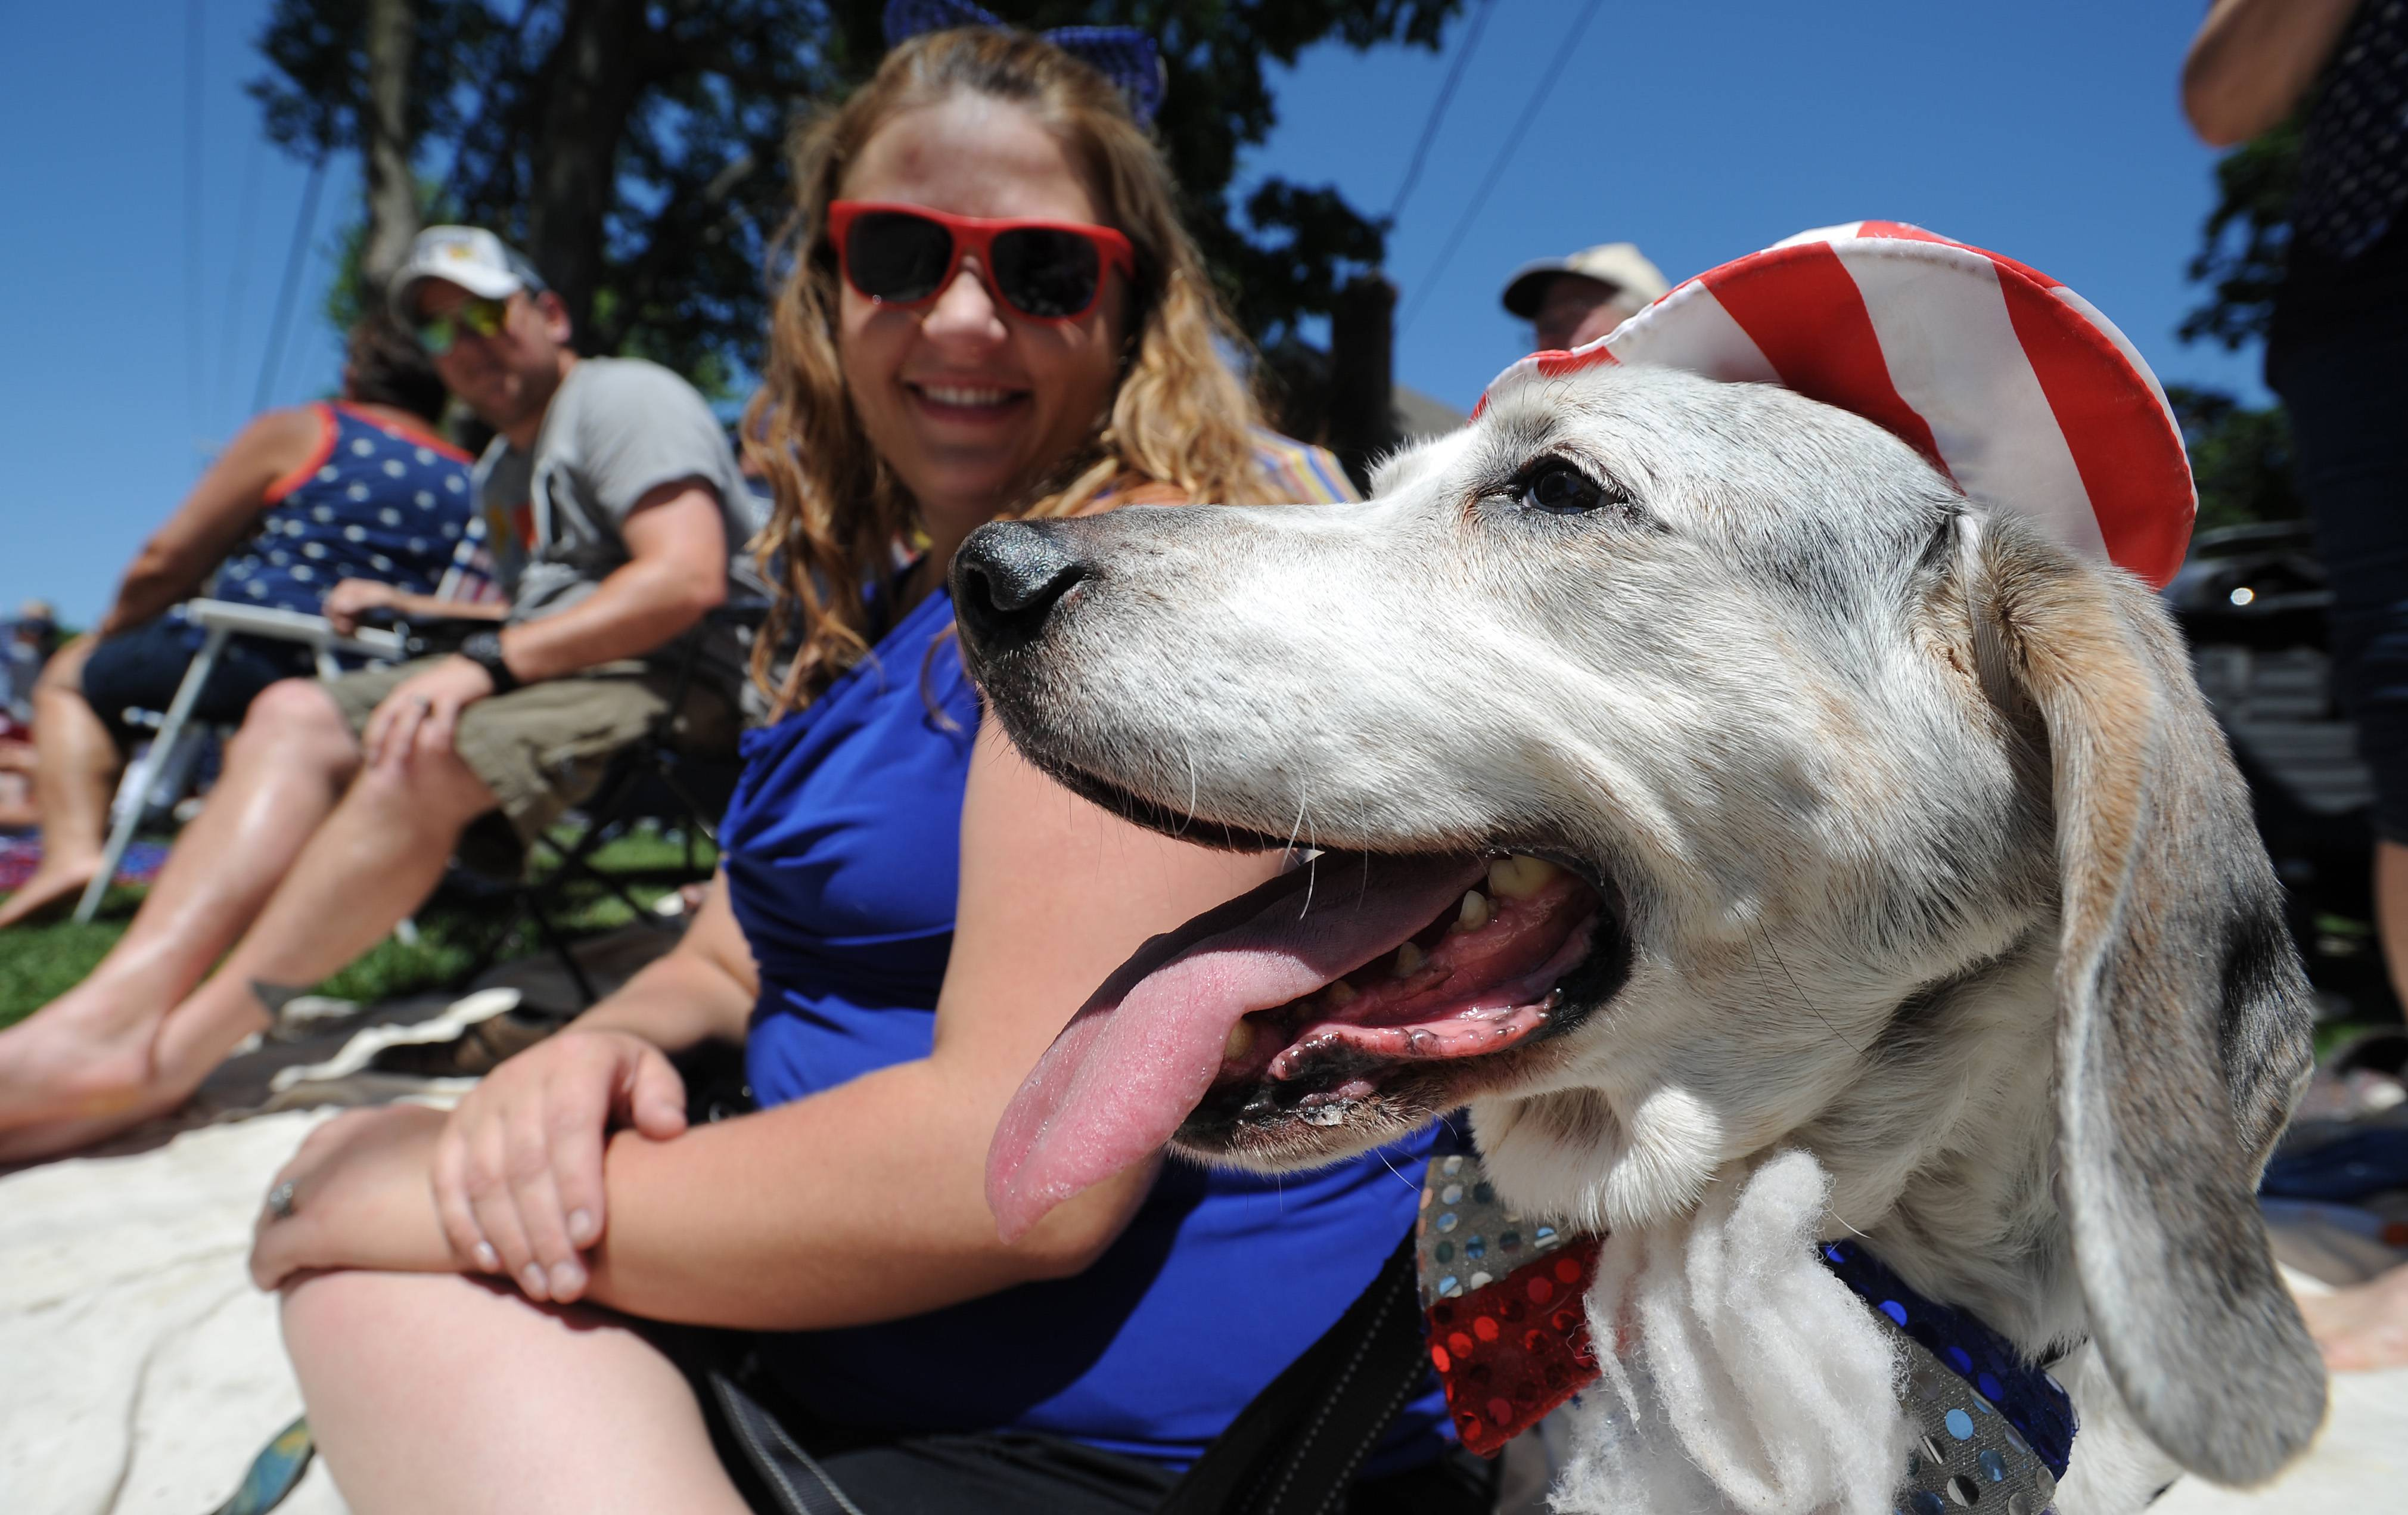 Murphy, a basset/beagle mix, has a tongue-wagging good time as owner Lindsay Schubel Nagle looks on at Palatine's annual Hometown Fest Fourth of July parade.